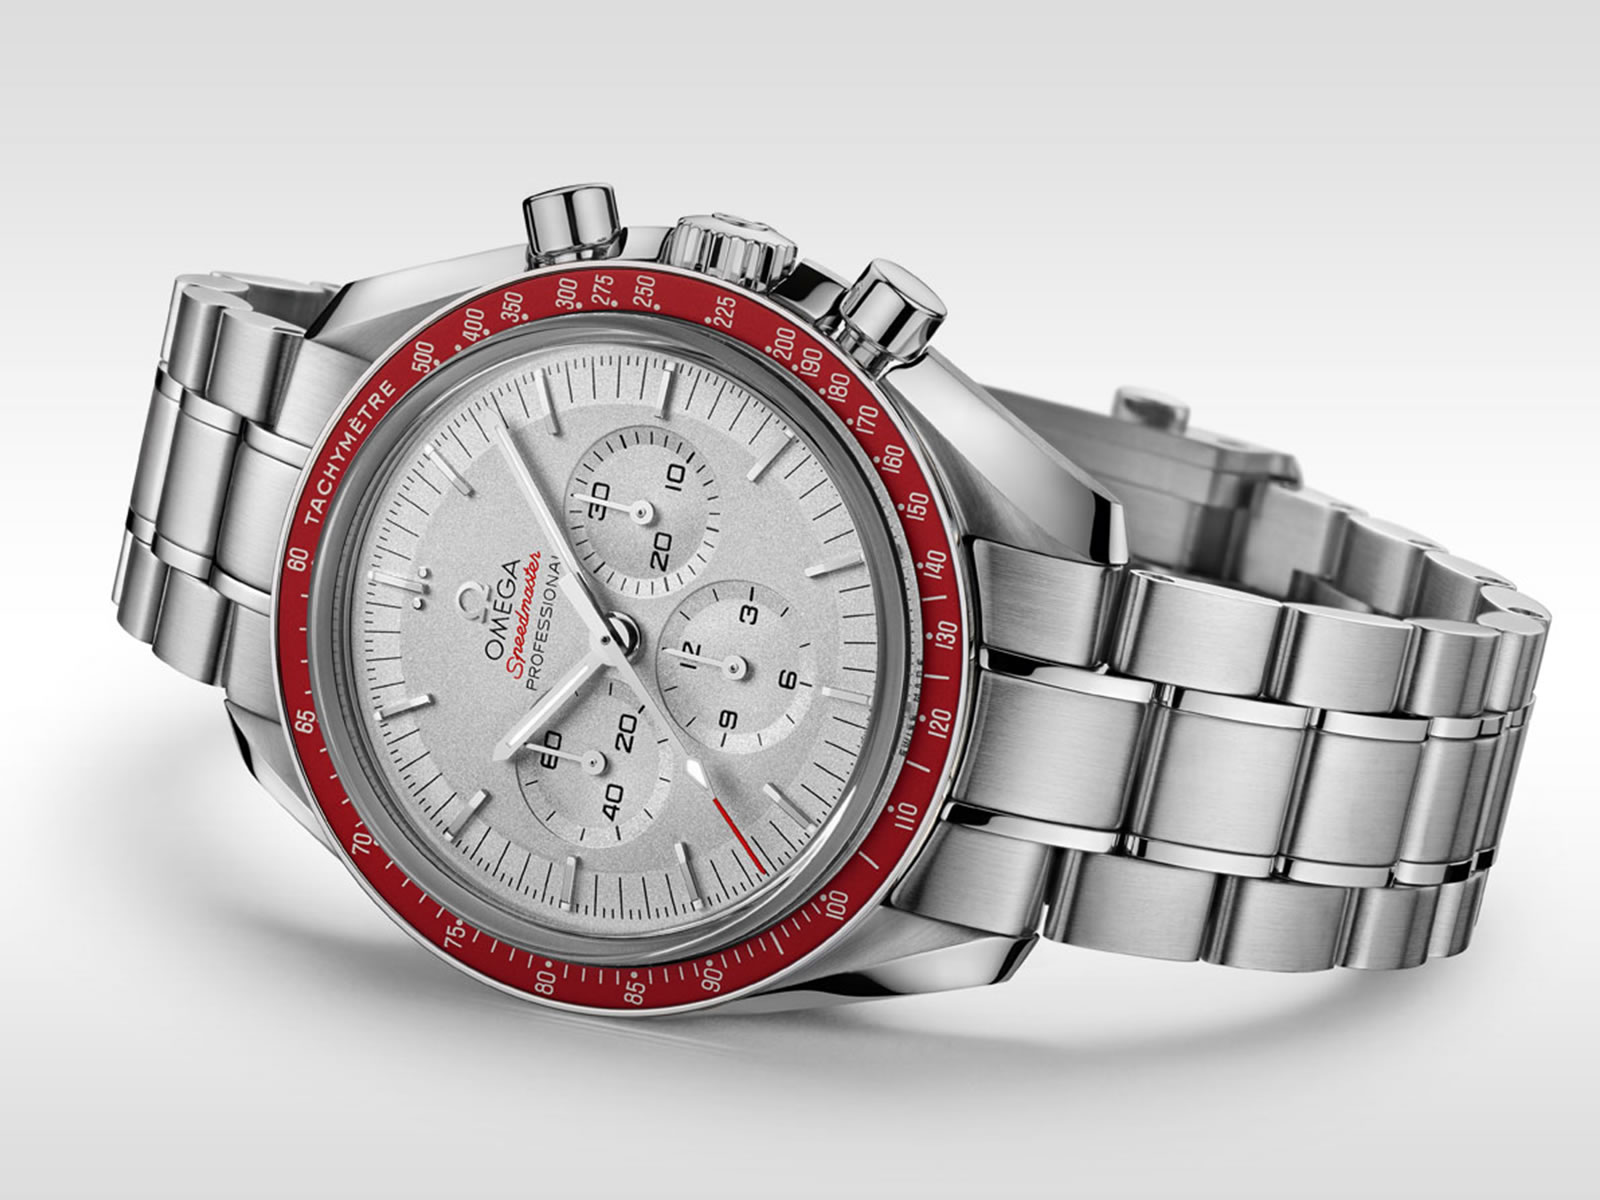 522-30-42-30-06-001-omega-olympic-games-2020-speedmaster-1-.jpg